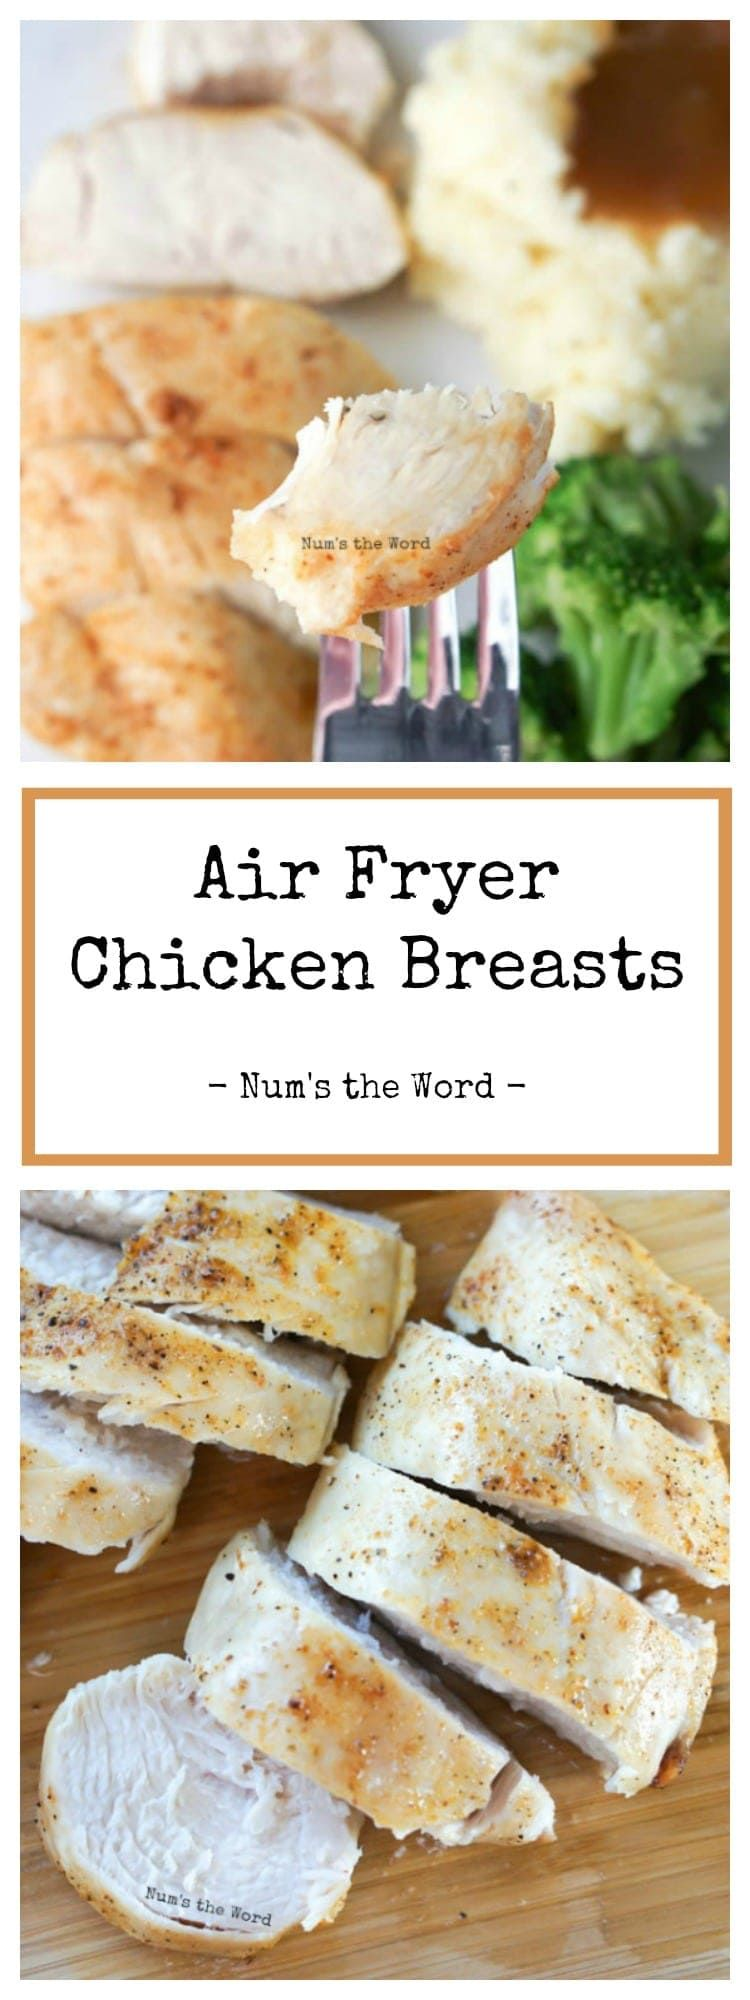 Air fryer chicken breasts can be seasoned with your